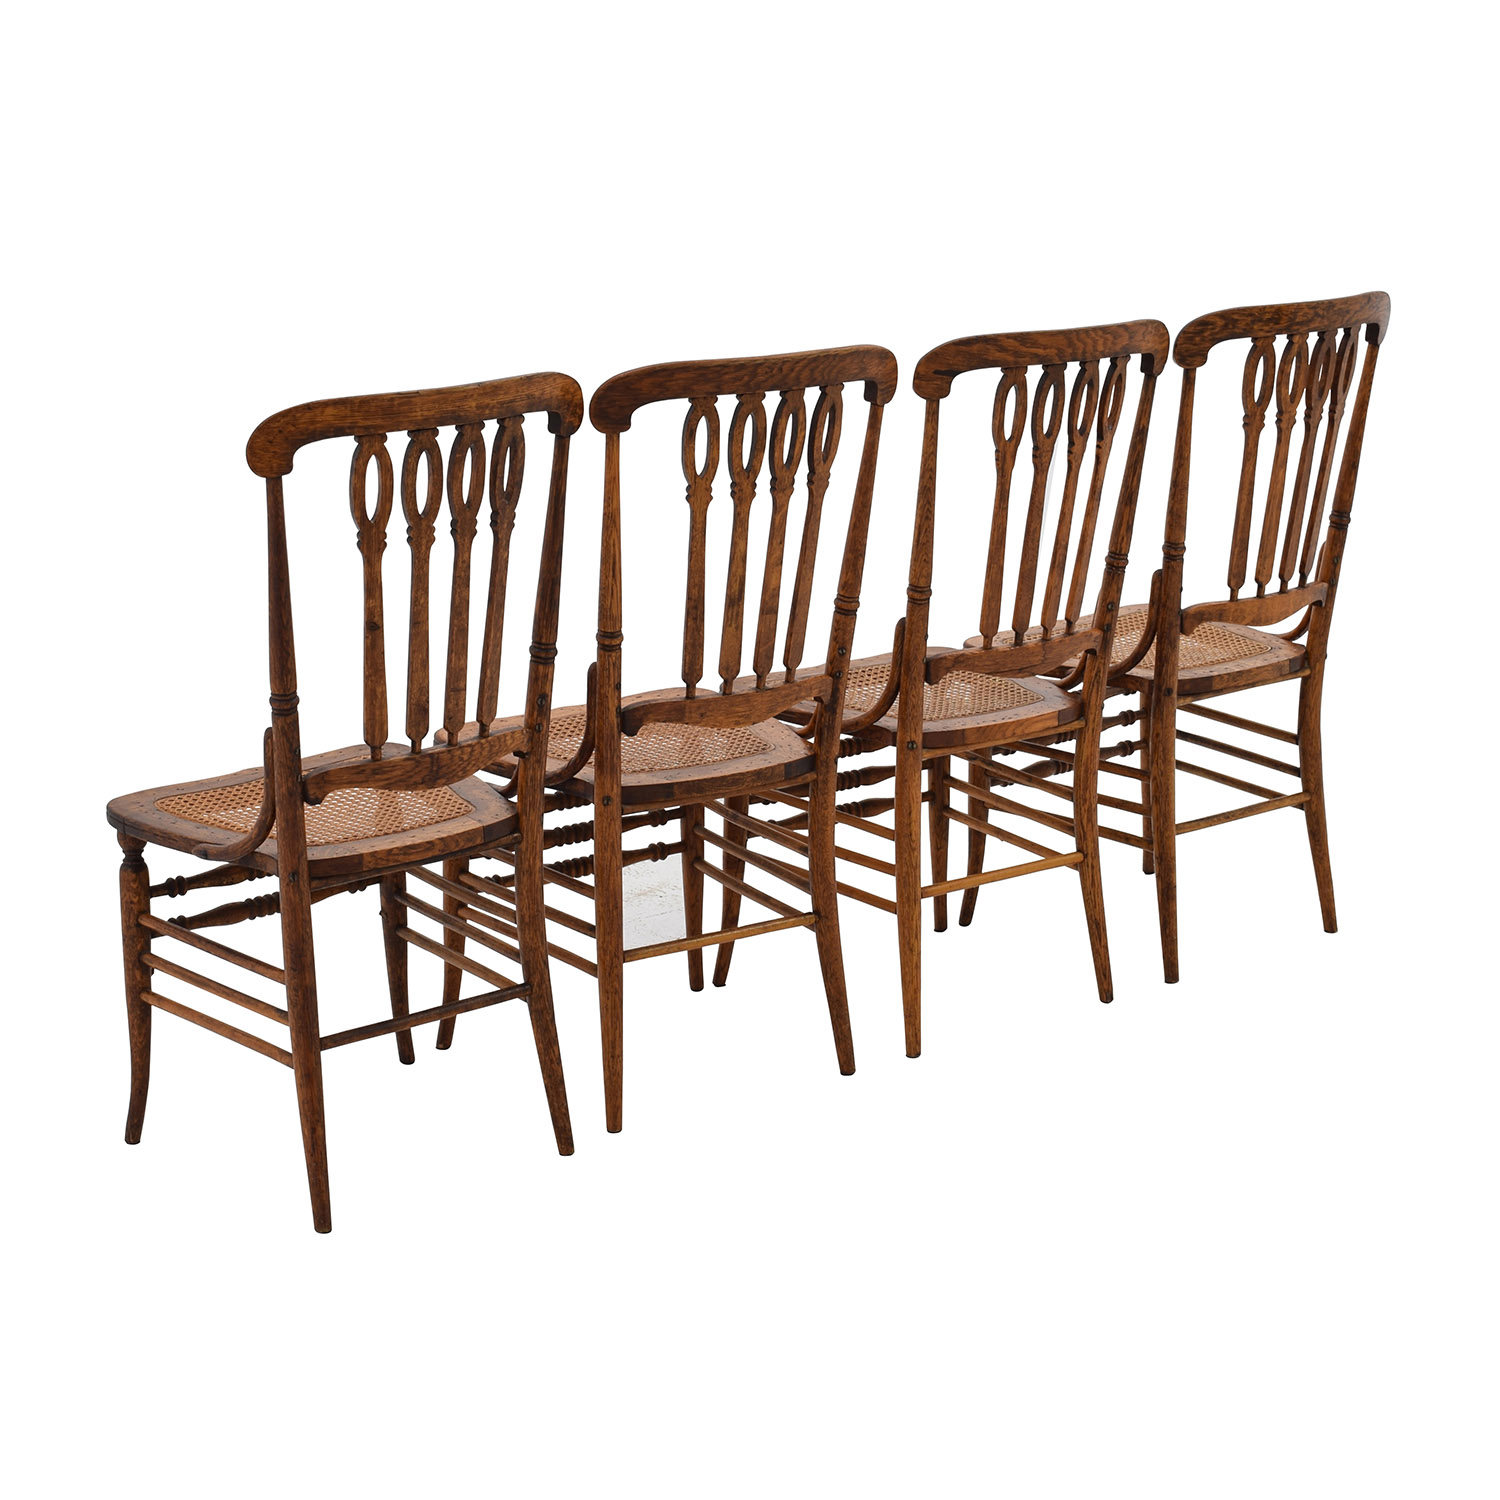 52% OFF Antique Cane Weaved Wood Dining Chairs Chairs